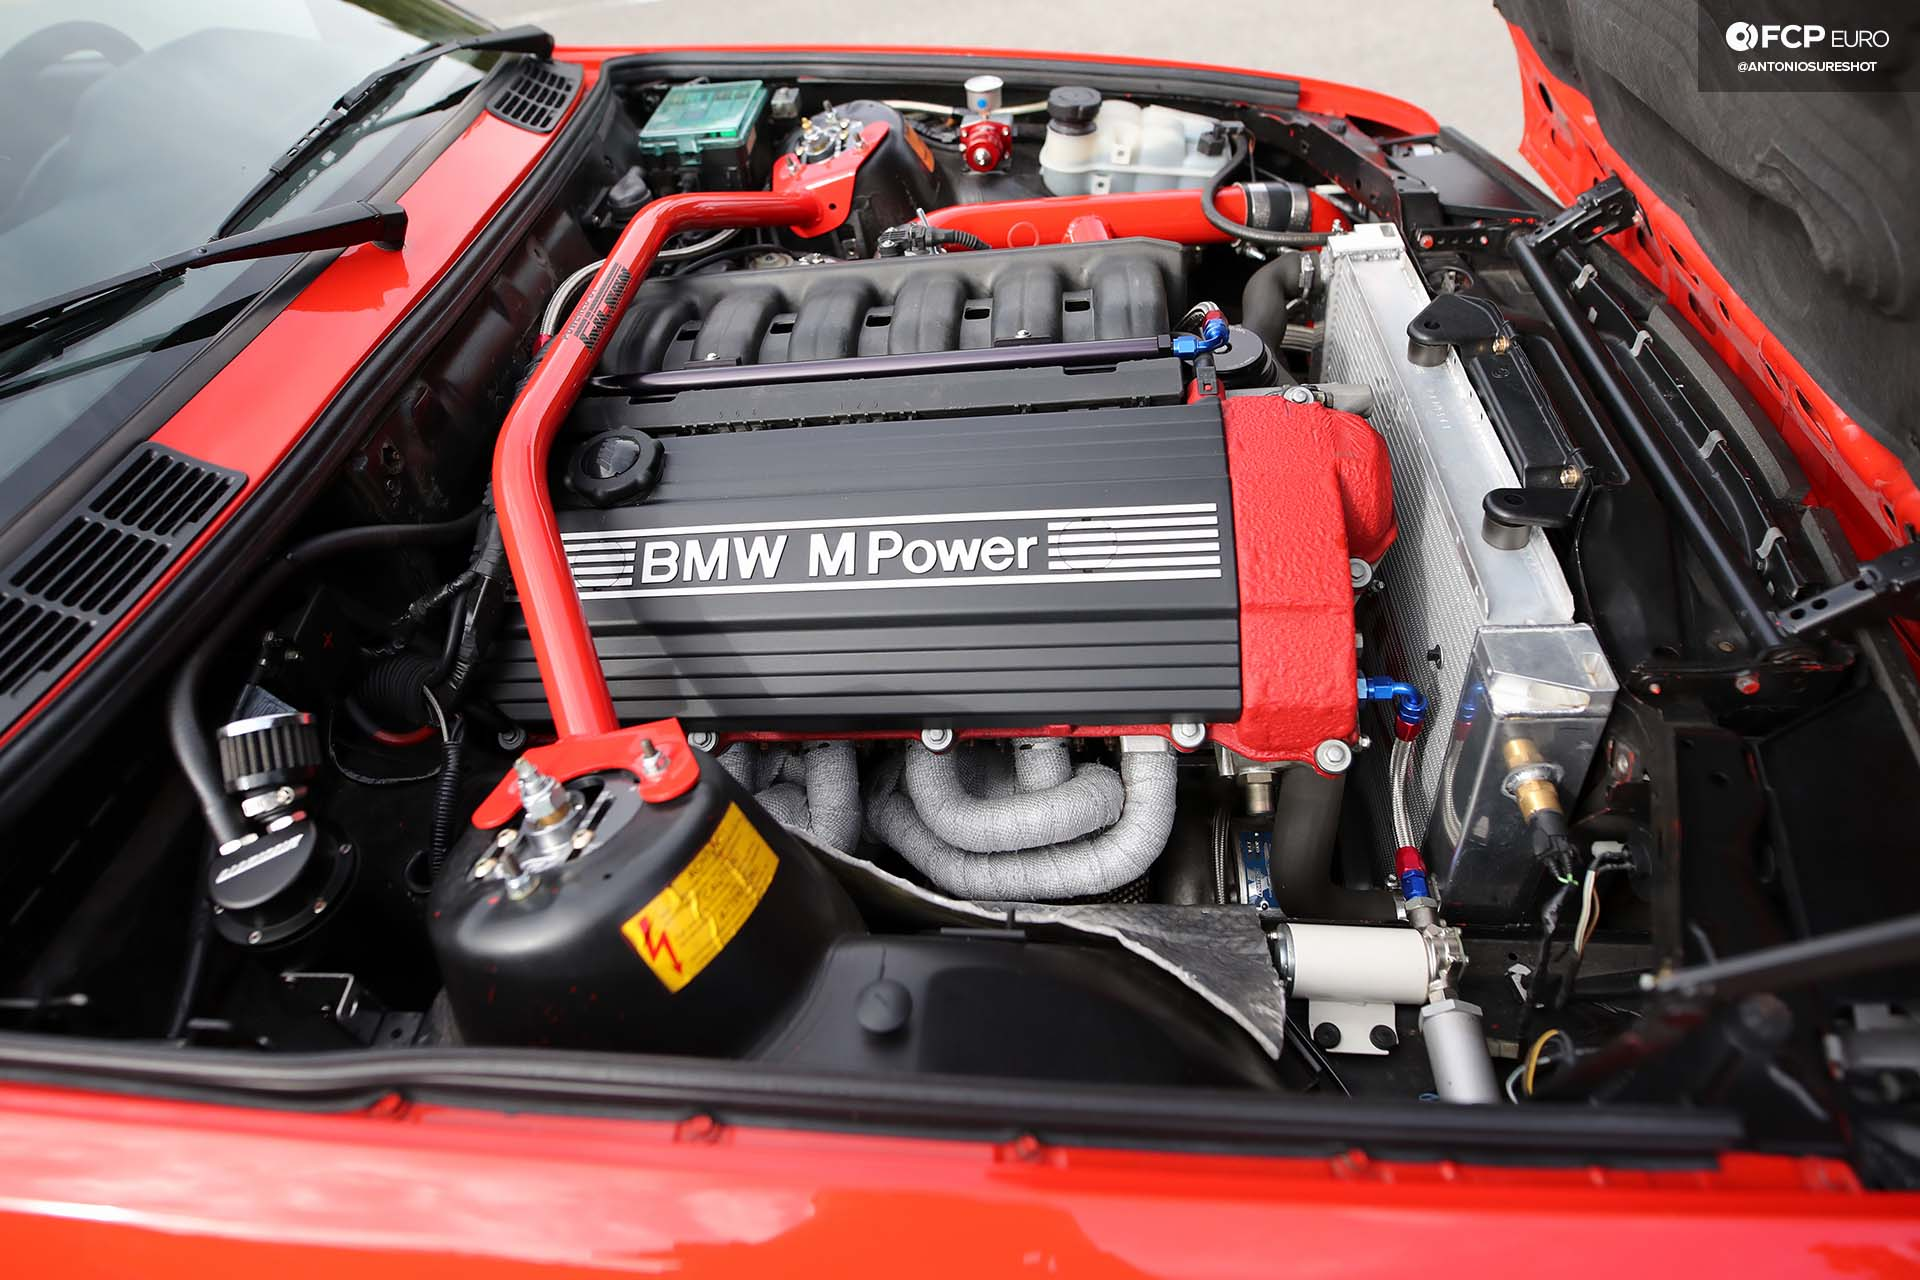 E30 M3 Supercharged metal widebody engine swap S50 Z3 M50